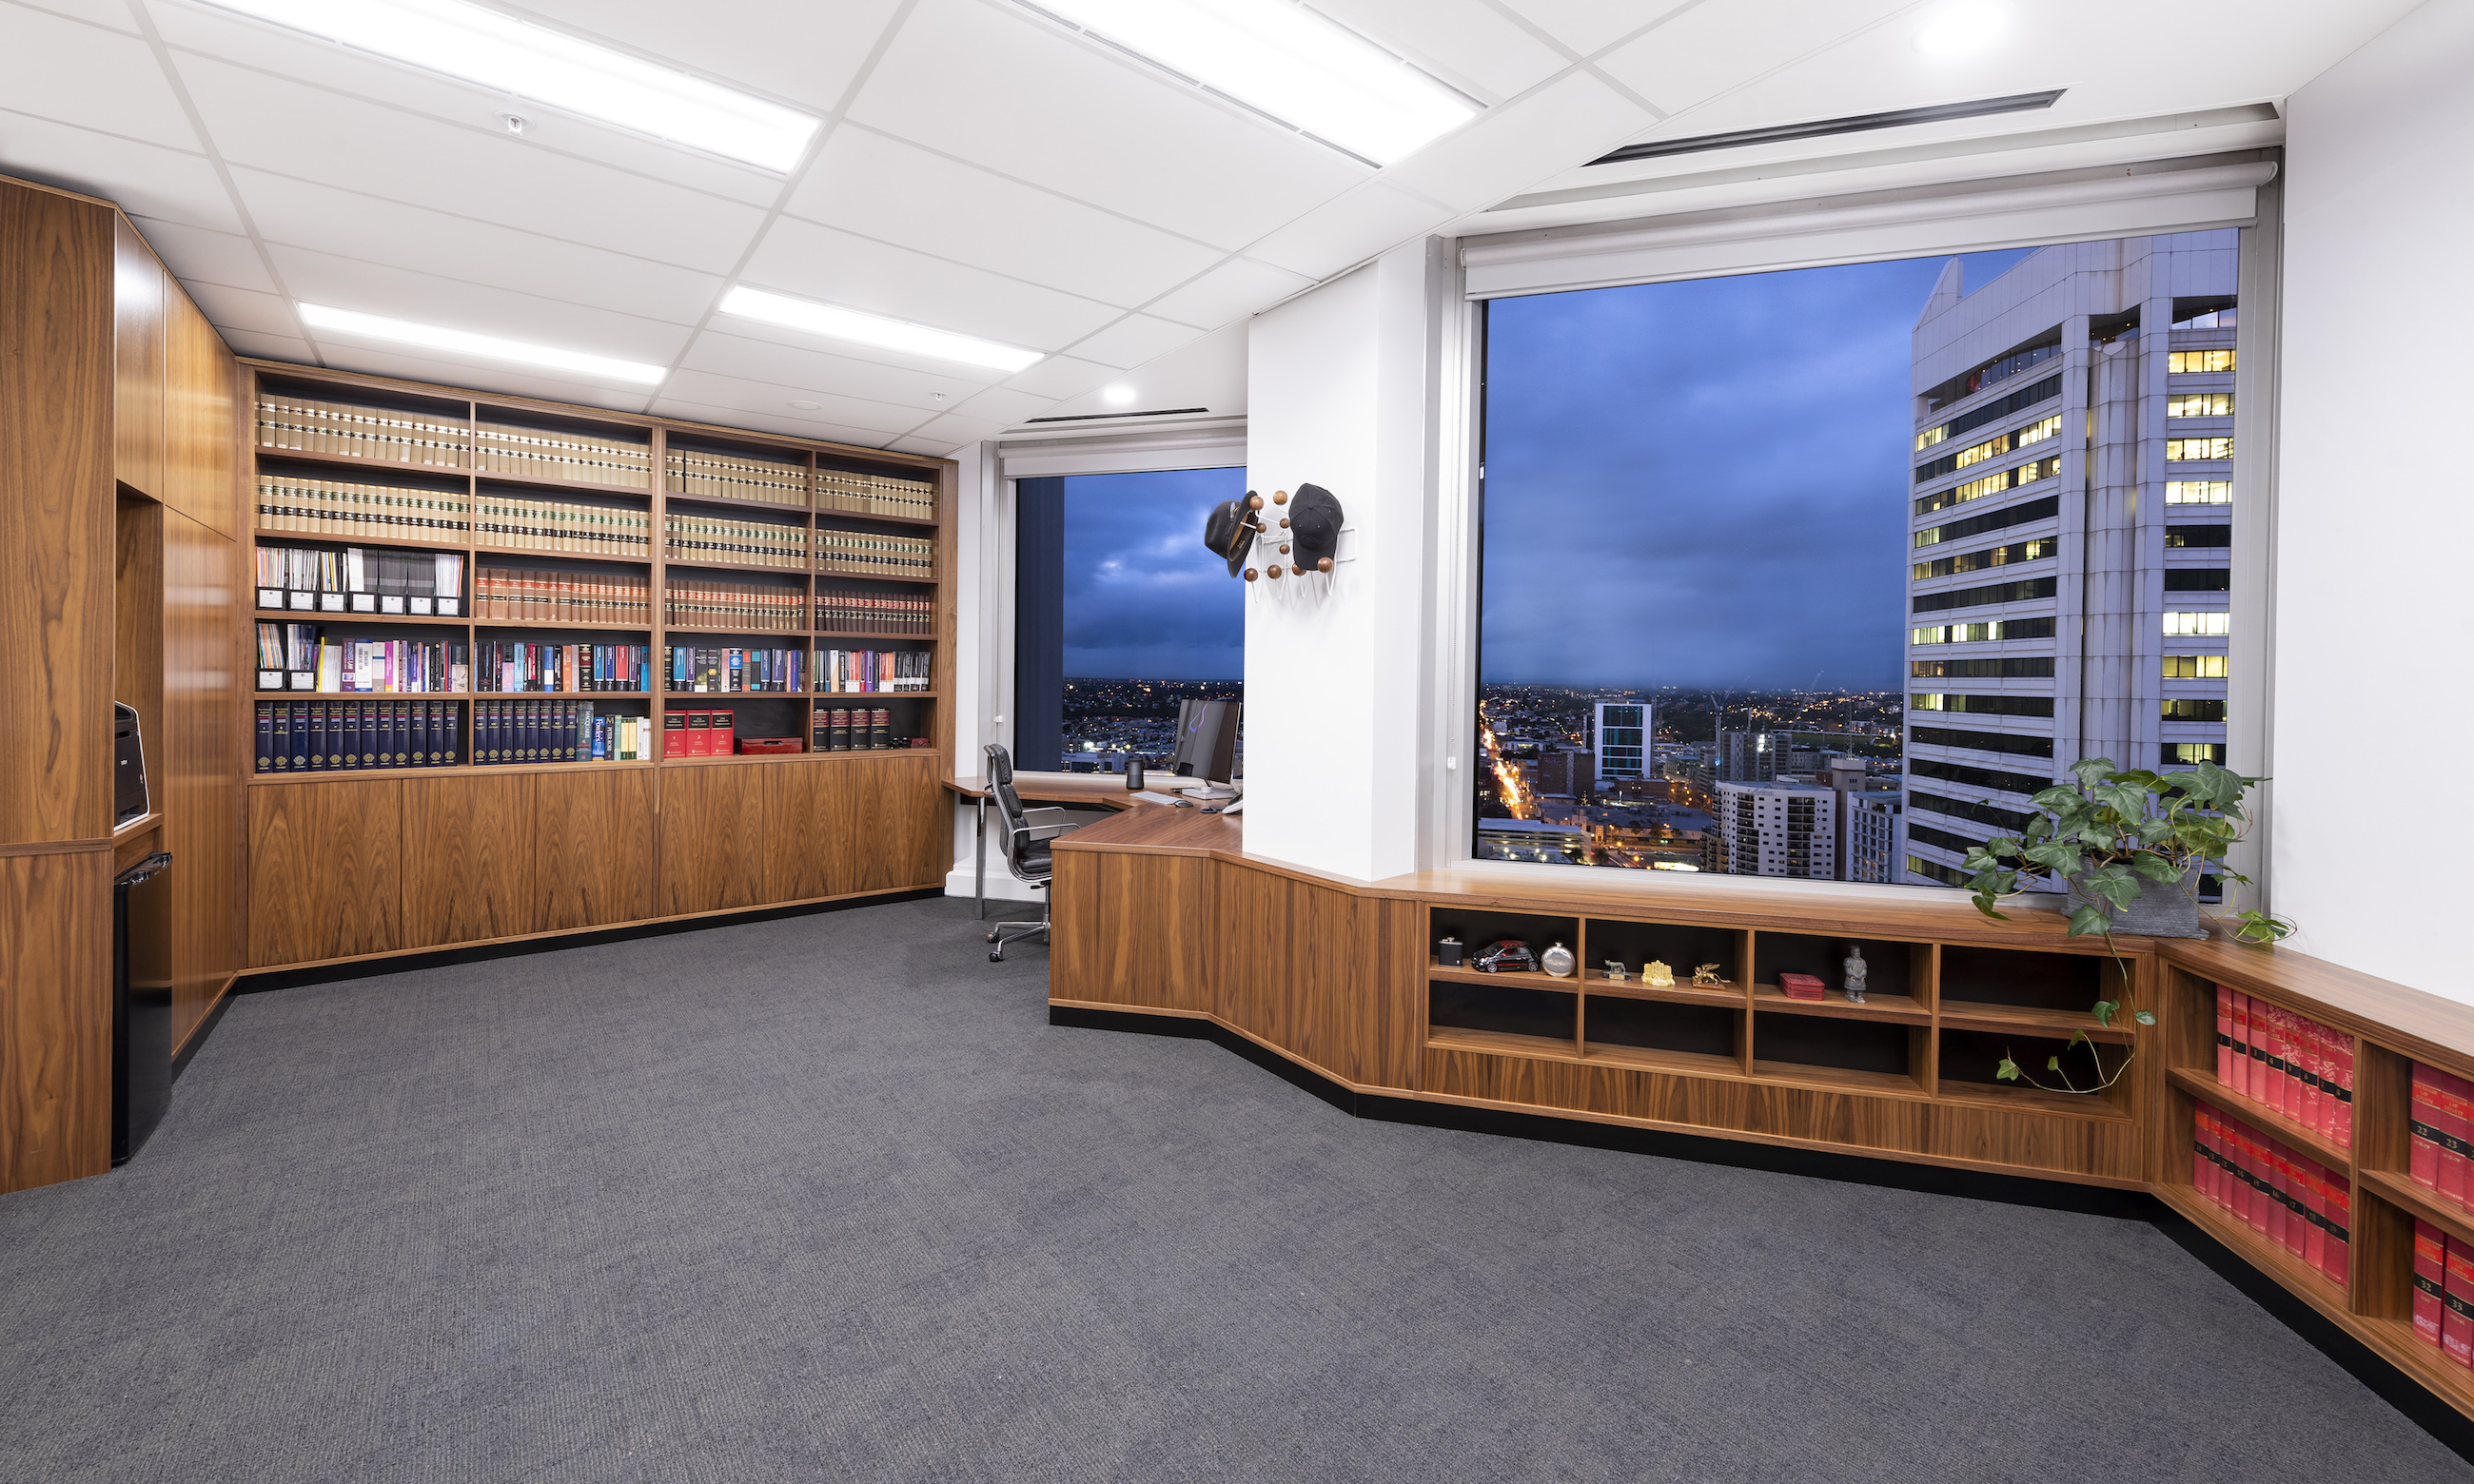 Timber Veneer Perth Custom Cabinets Perth Built In Bookshelves Bookcases With